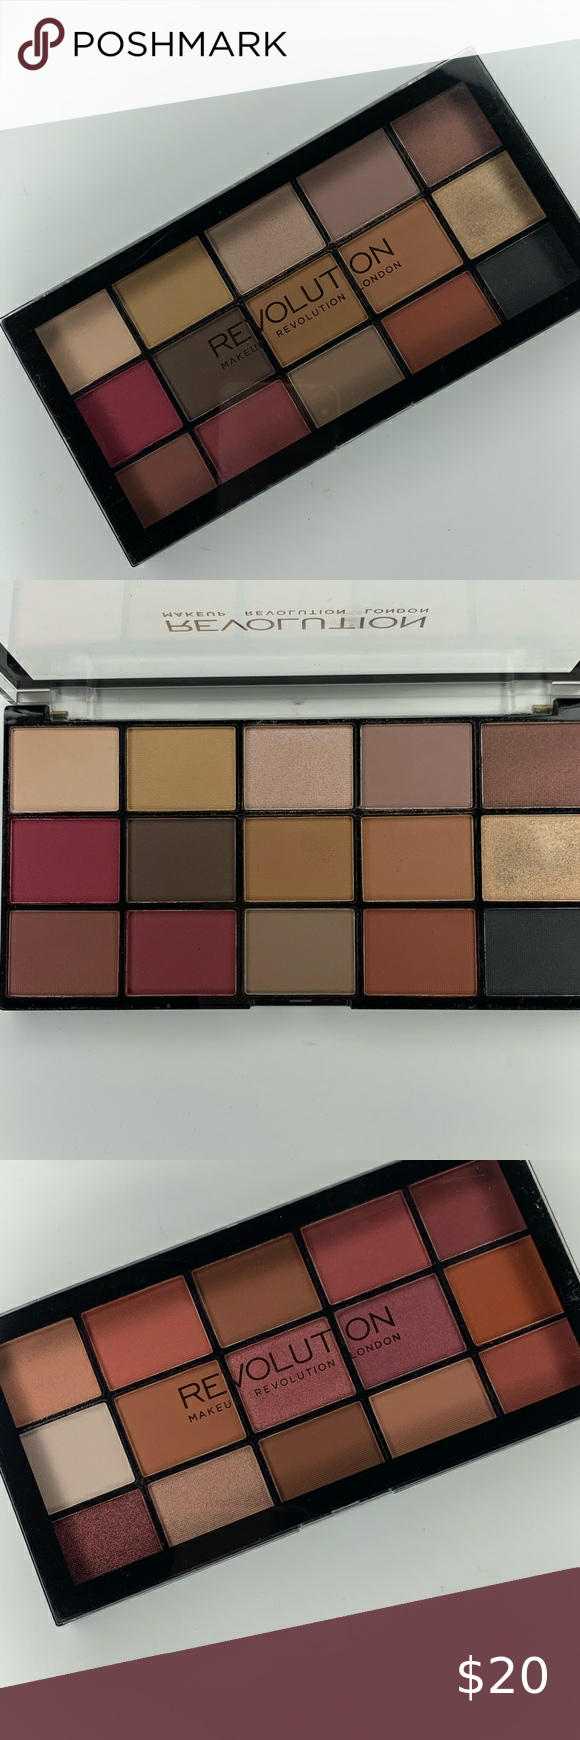 MAKEUP REVOLUTION BUNDLE These are the Reloaded Palettes